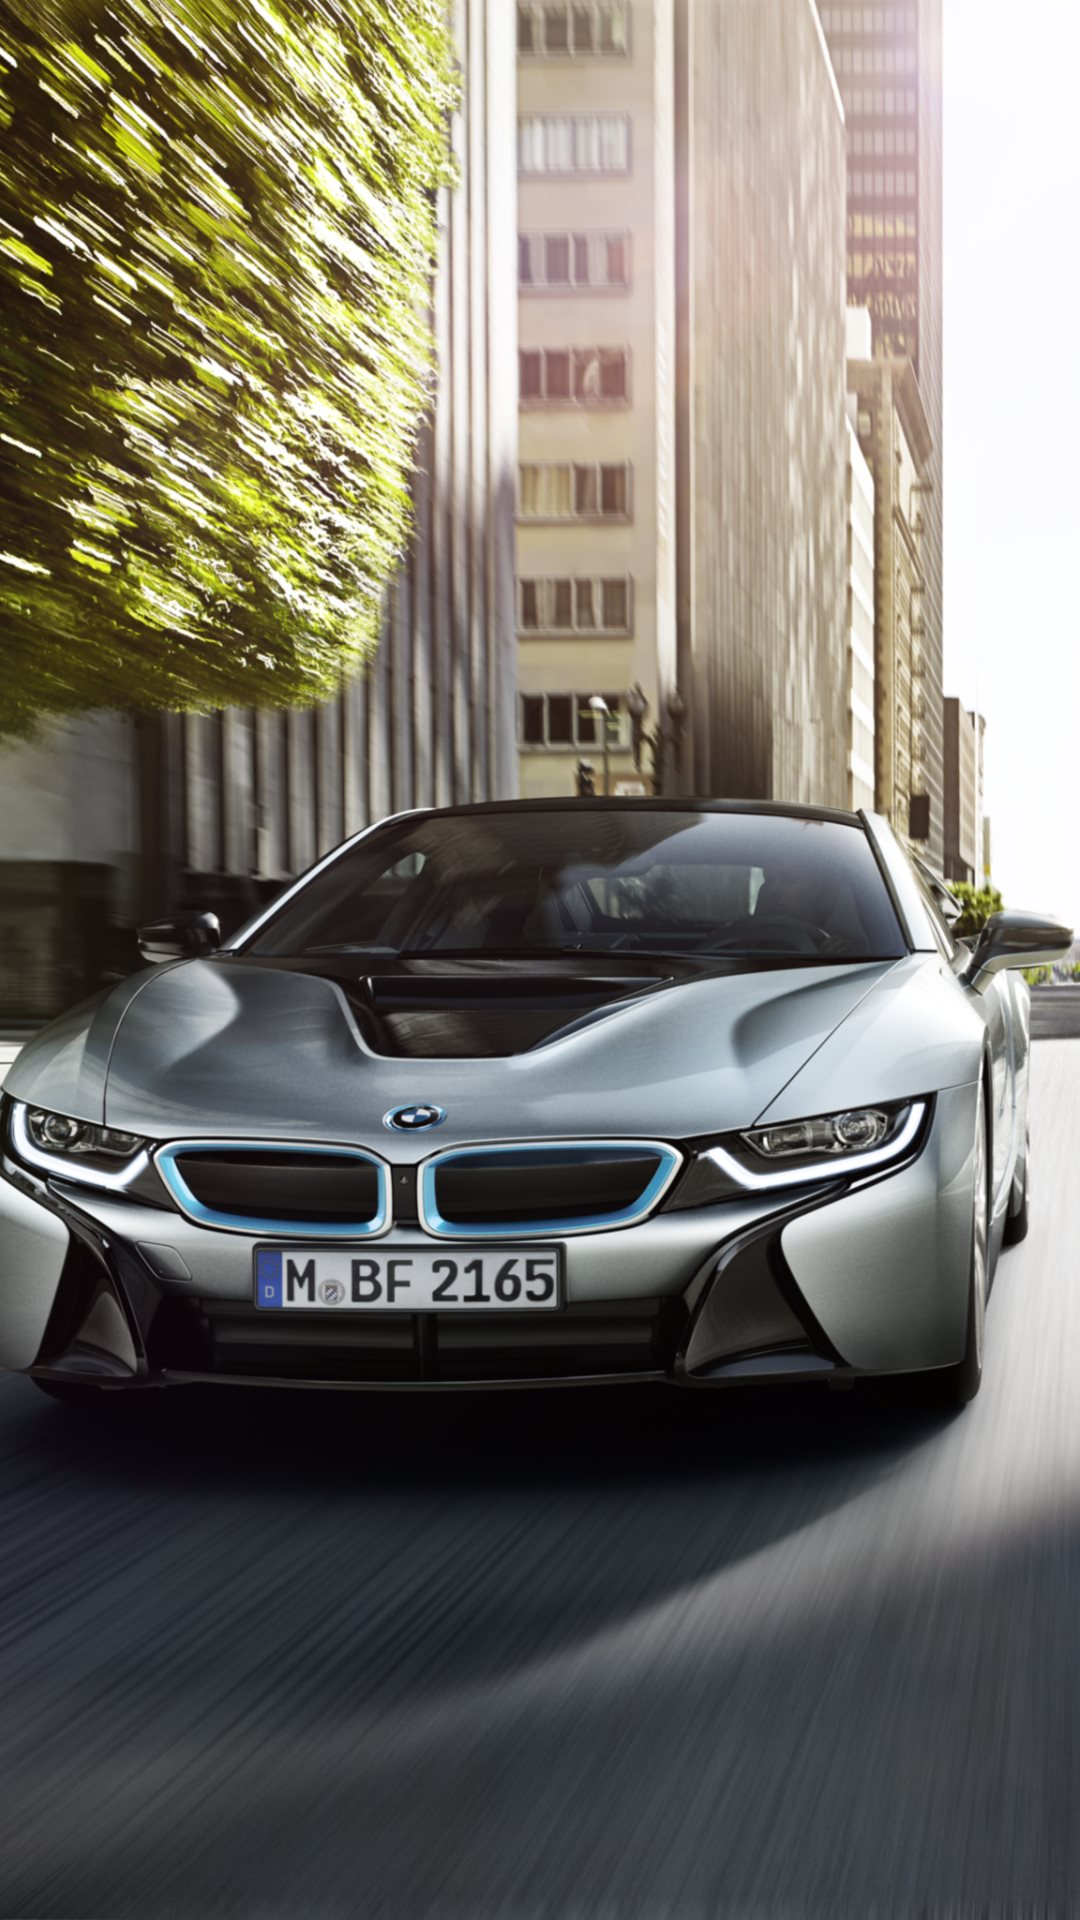 Bmw I8 Wallpaper Phone GOOGLESACK